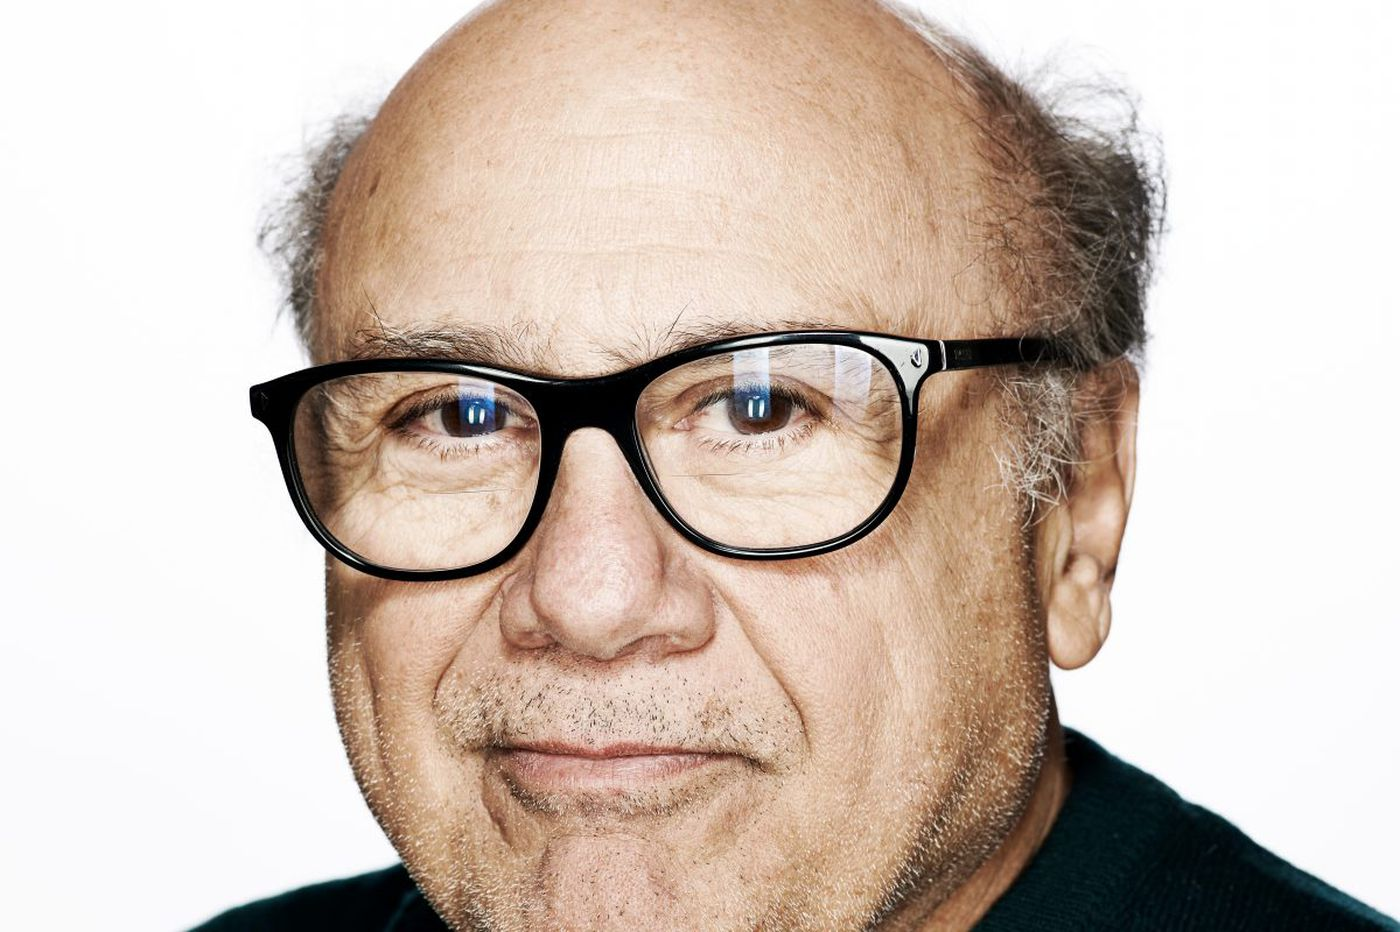 danny devito now has his own day in new jersey